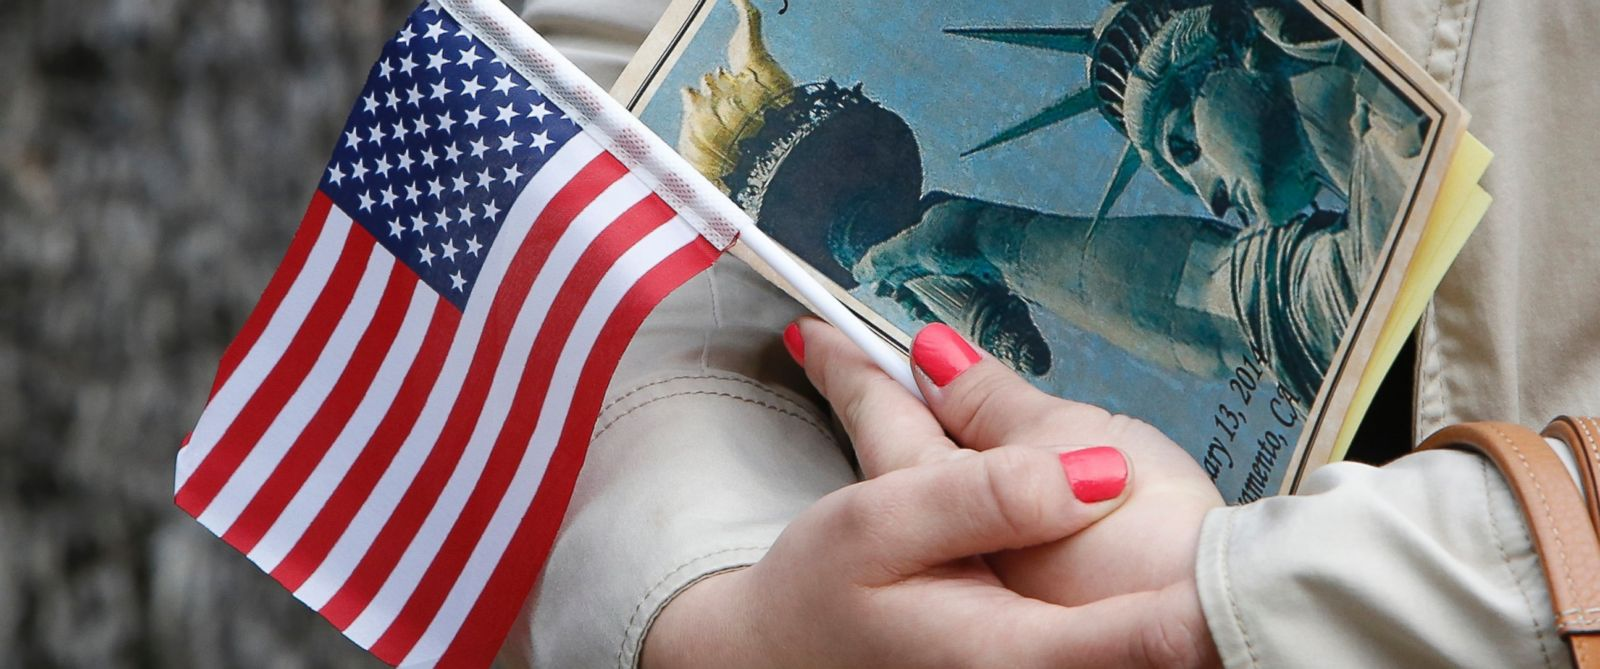 PHOTO: In this file photo, Kristina Drobot holds an American flag as she waits to be sworn-in as a U.S. citizen during naturalization ceremonies at the Old Governors Mansion in Sacramento, Calif., Feb. 13, 2014.